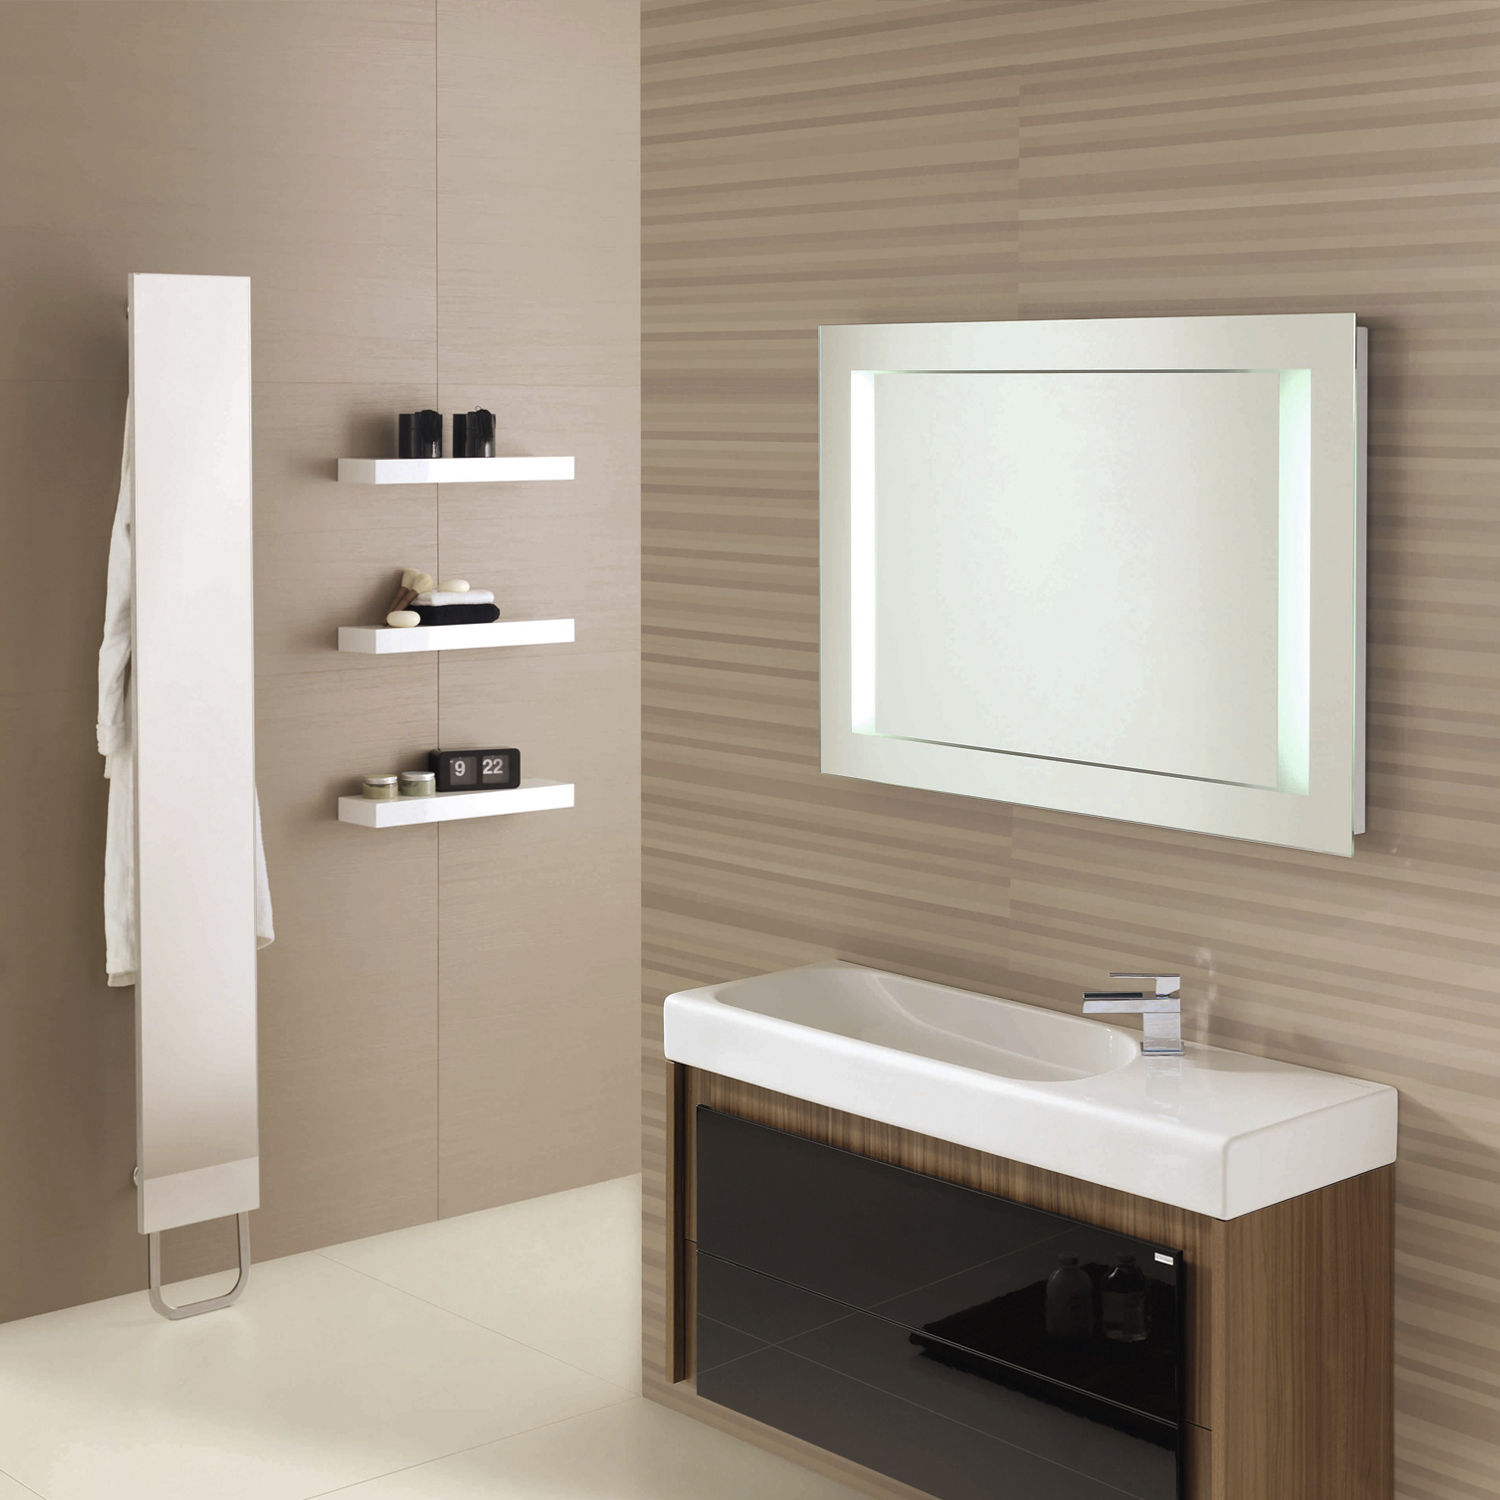 Image of: Top White Frame Mirror